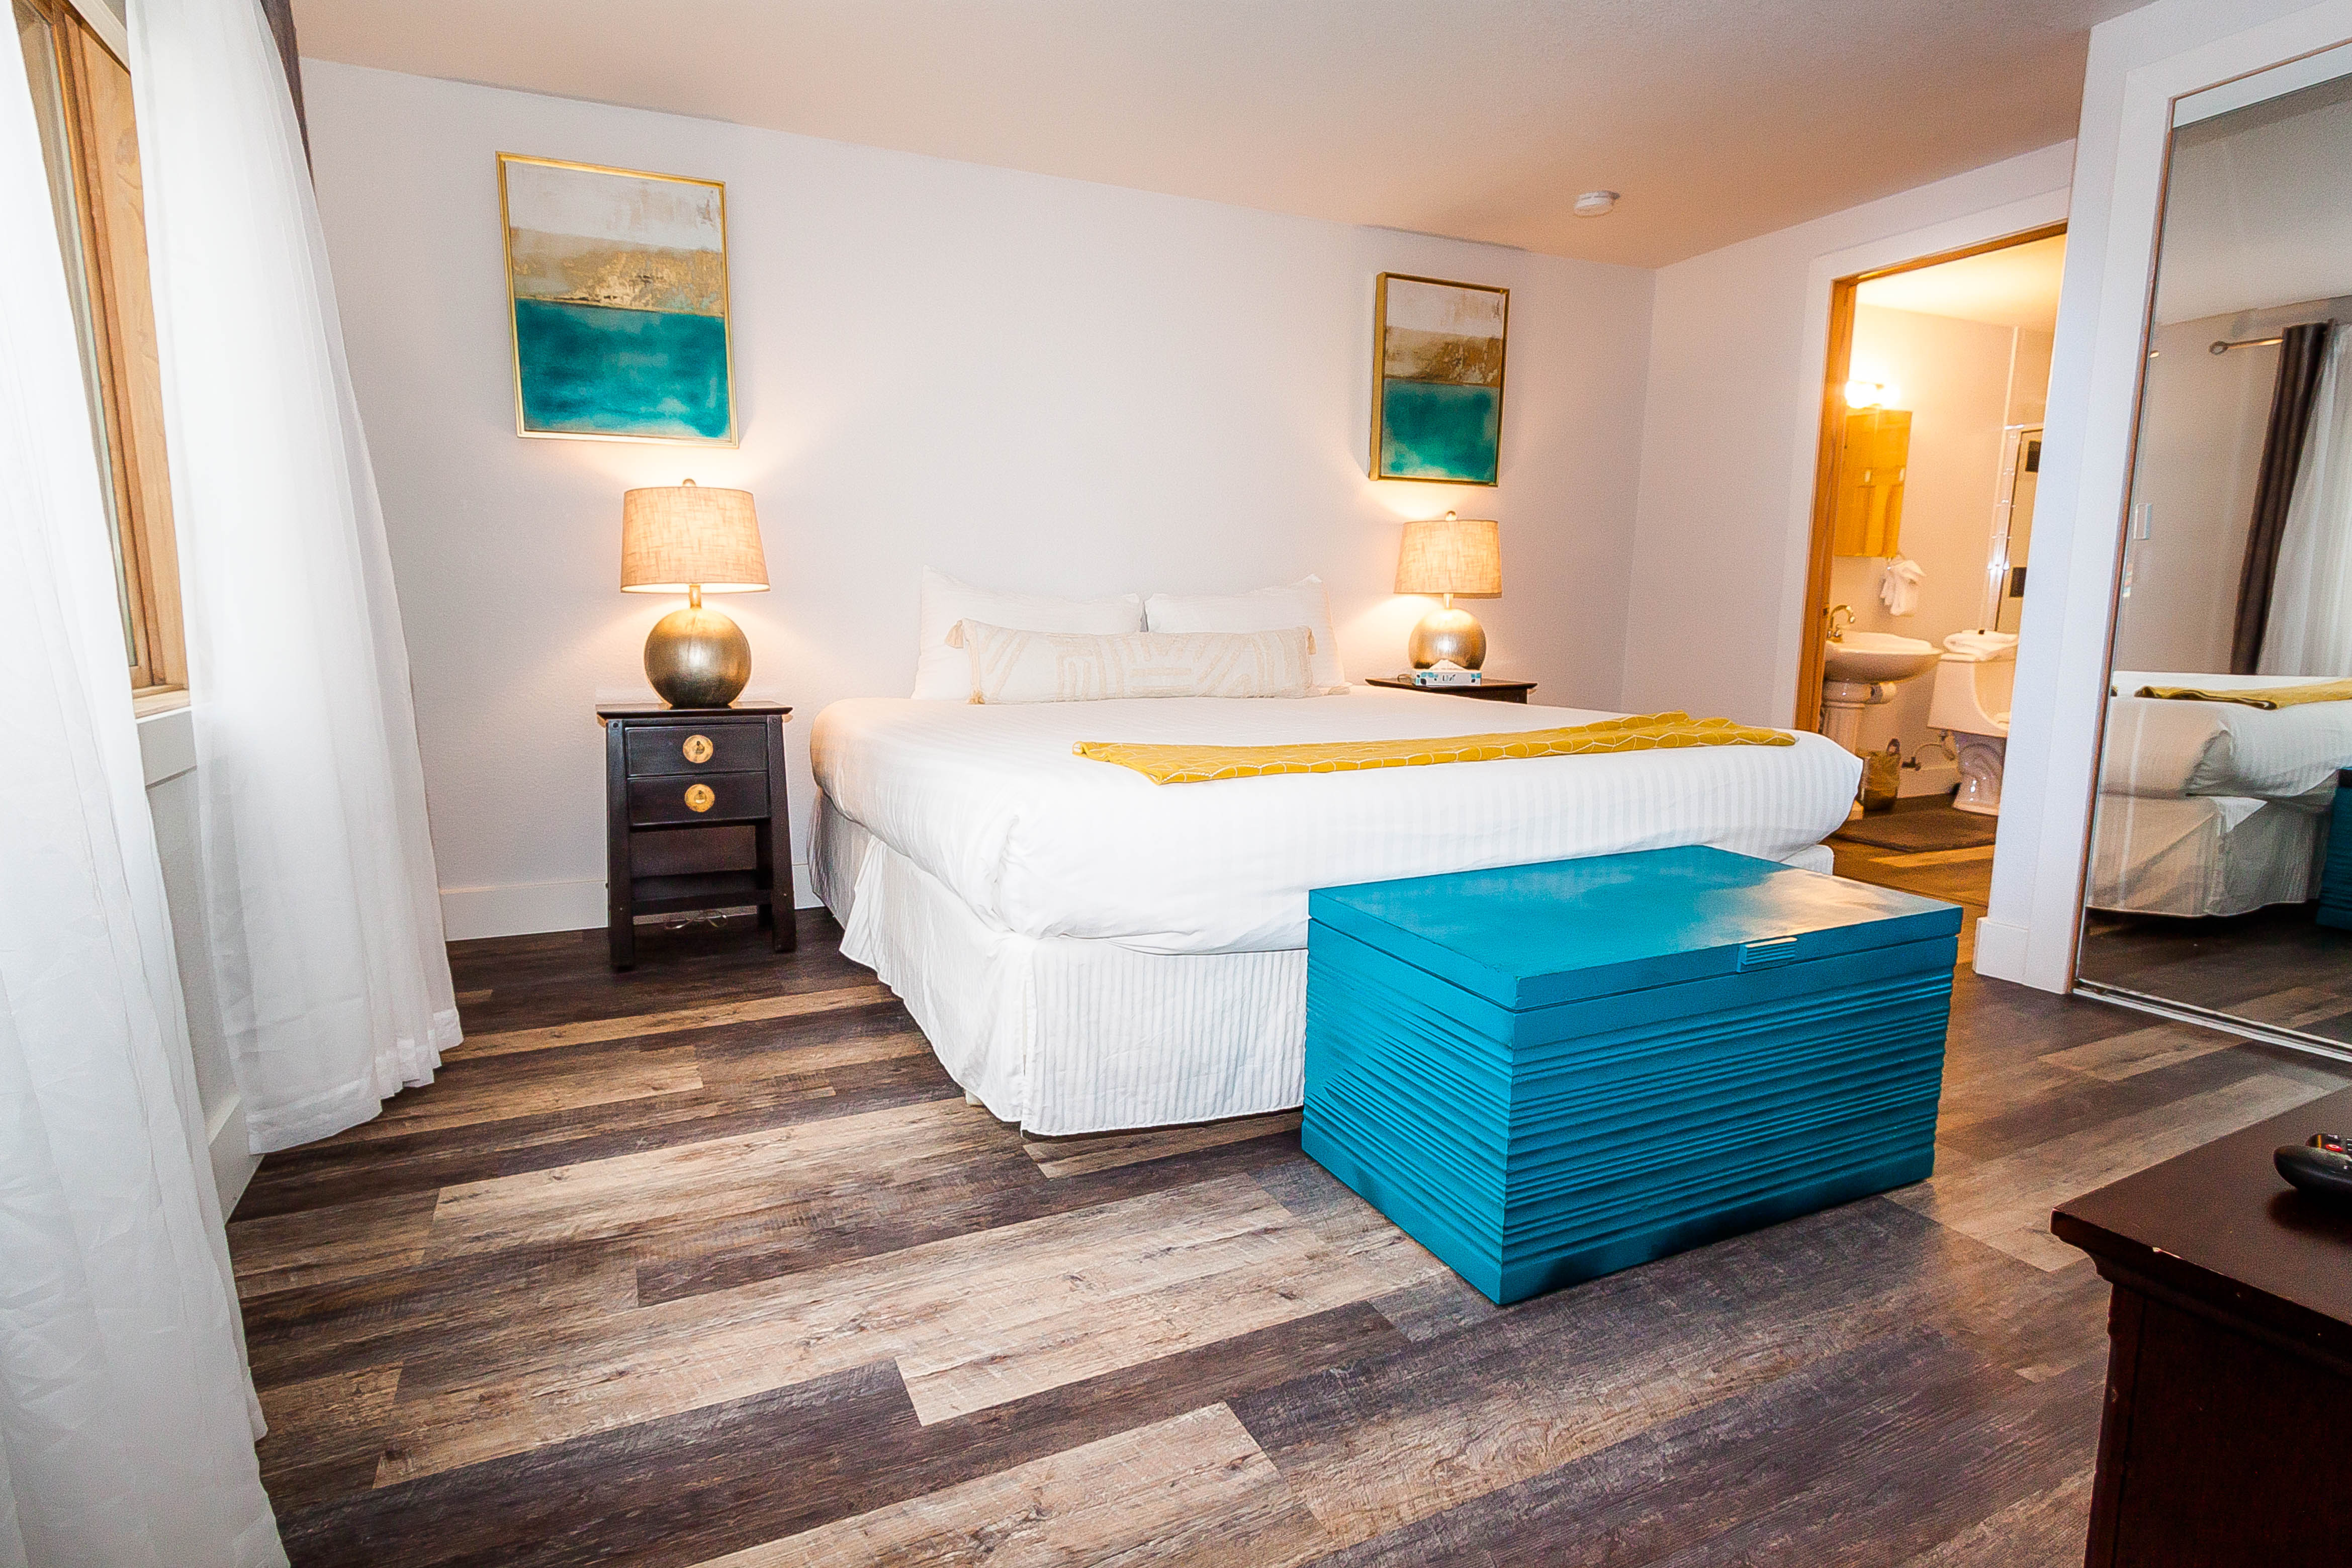 The bedroom features a king-sized bed with Ivory White Bedding and a flat screen TV.